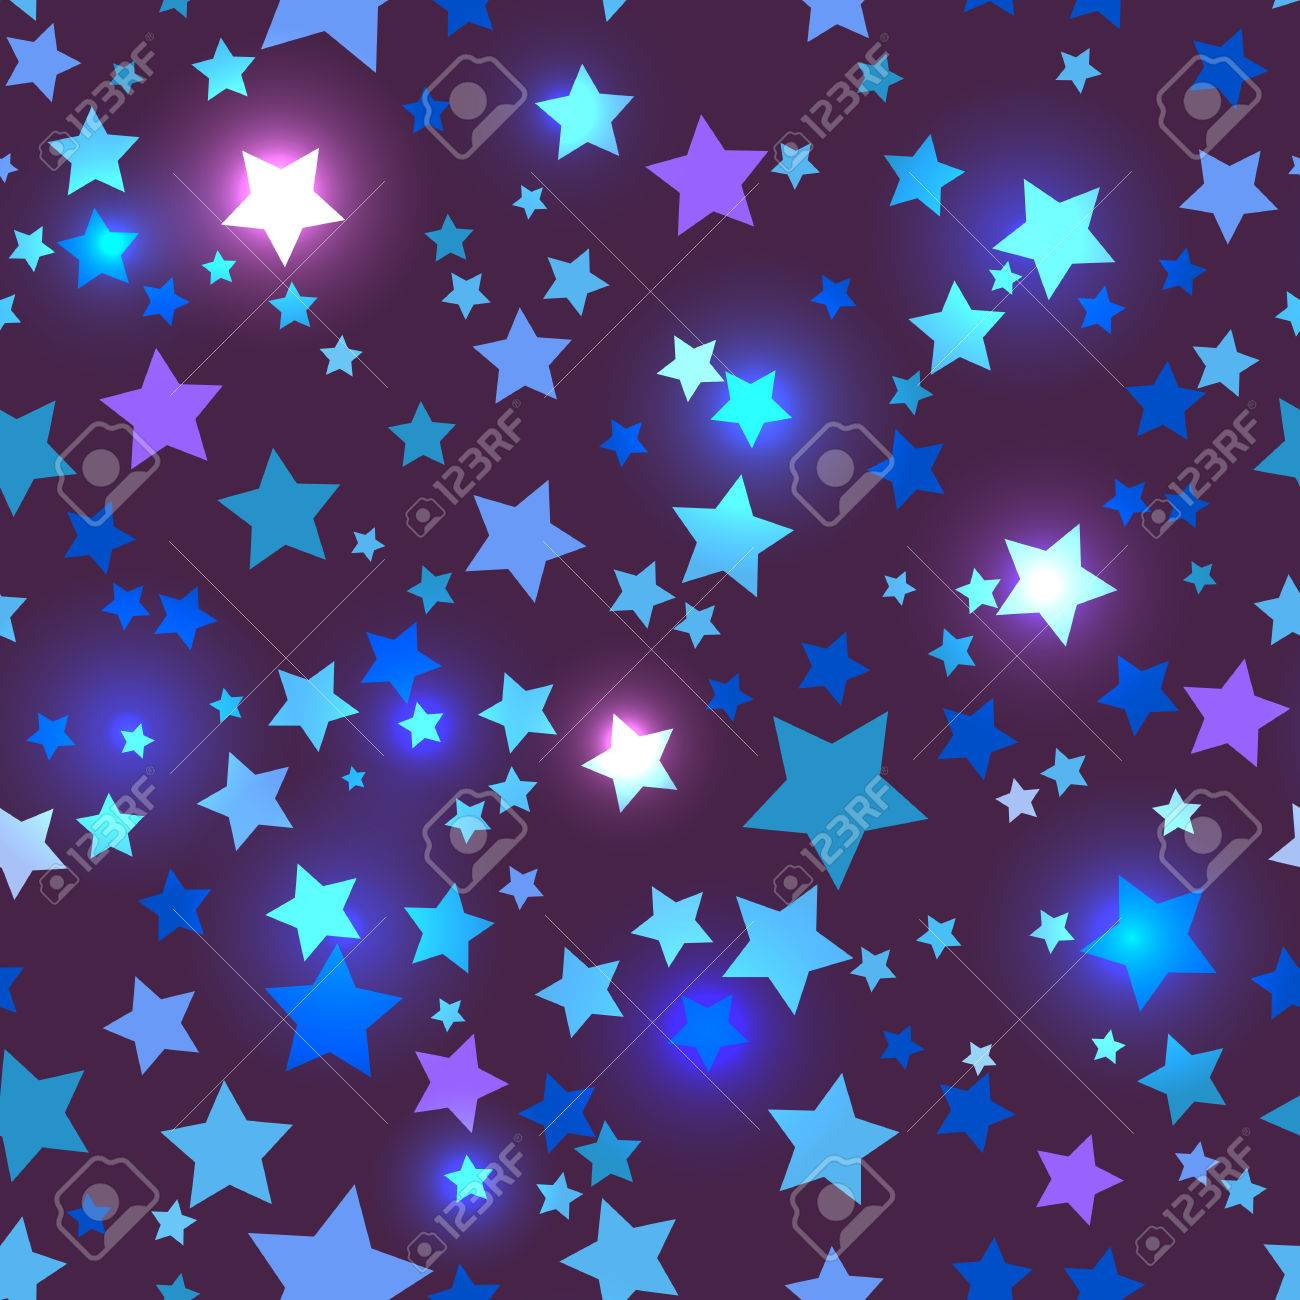 Holidays bright seamless with shiny blue stars on a dark background holidays bright seamless with shiny blue stars on a dark background in disco style stock vector thecheapjerseys Gallery